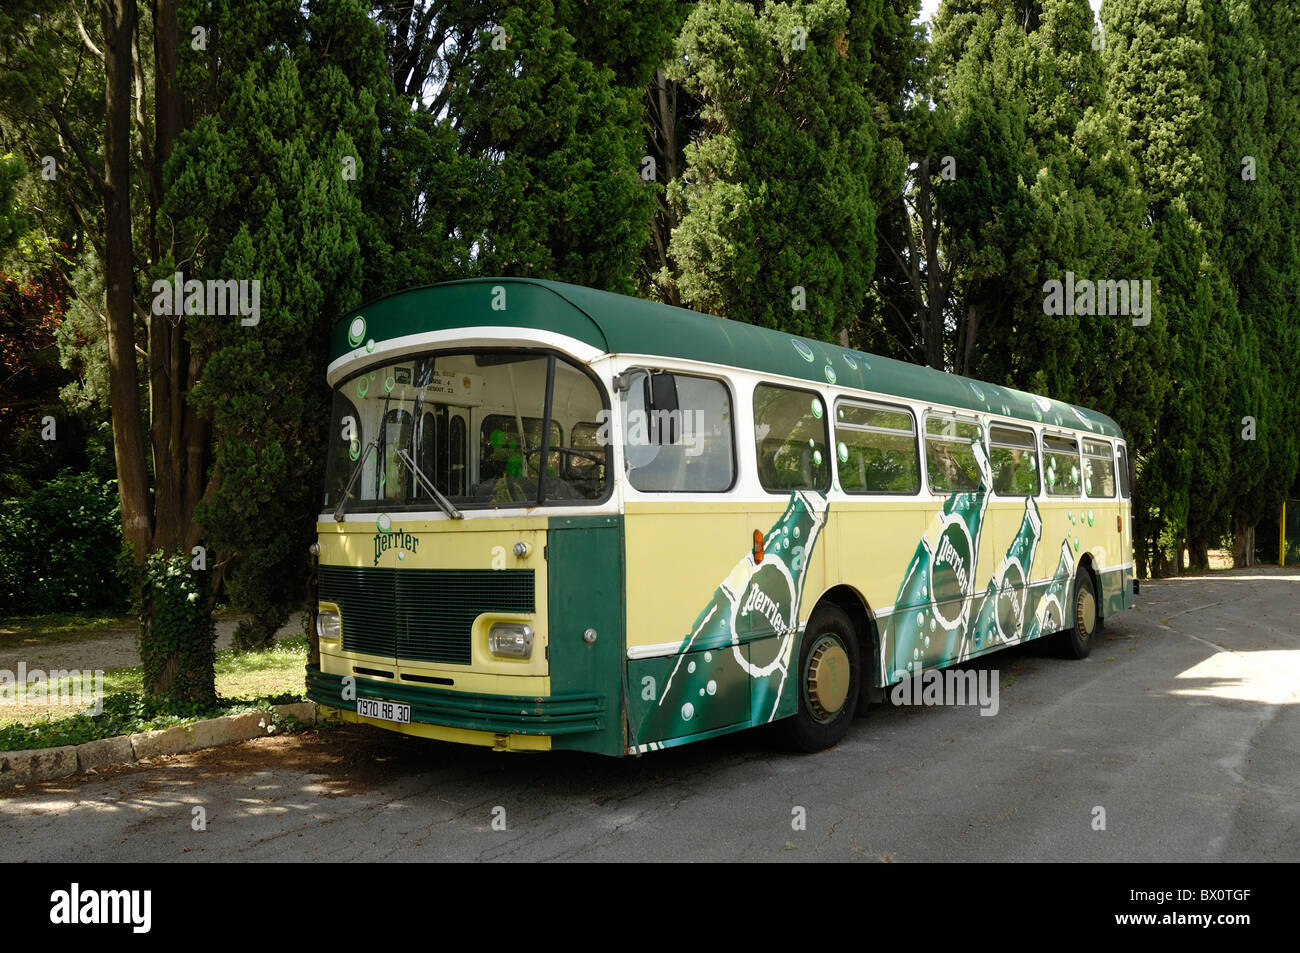 Painted Perrier Bus Decorated with Perrier Bottles for Advertising Purposes, Source Perrier, Vergèze, nr Nimes, - Stock Image